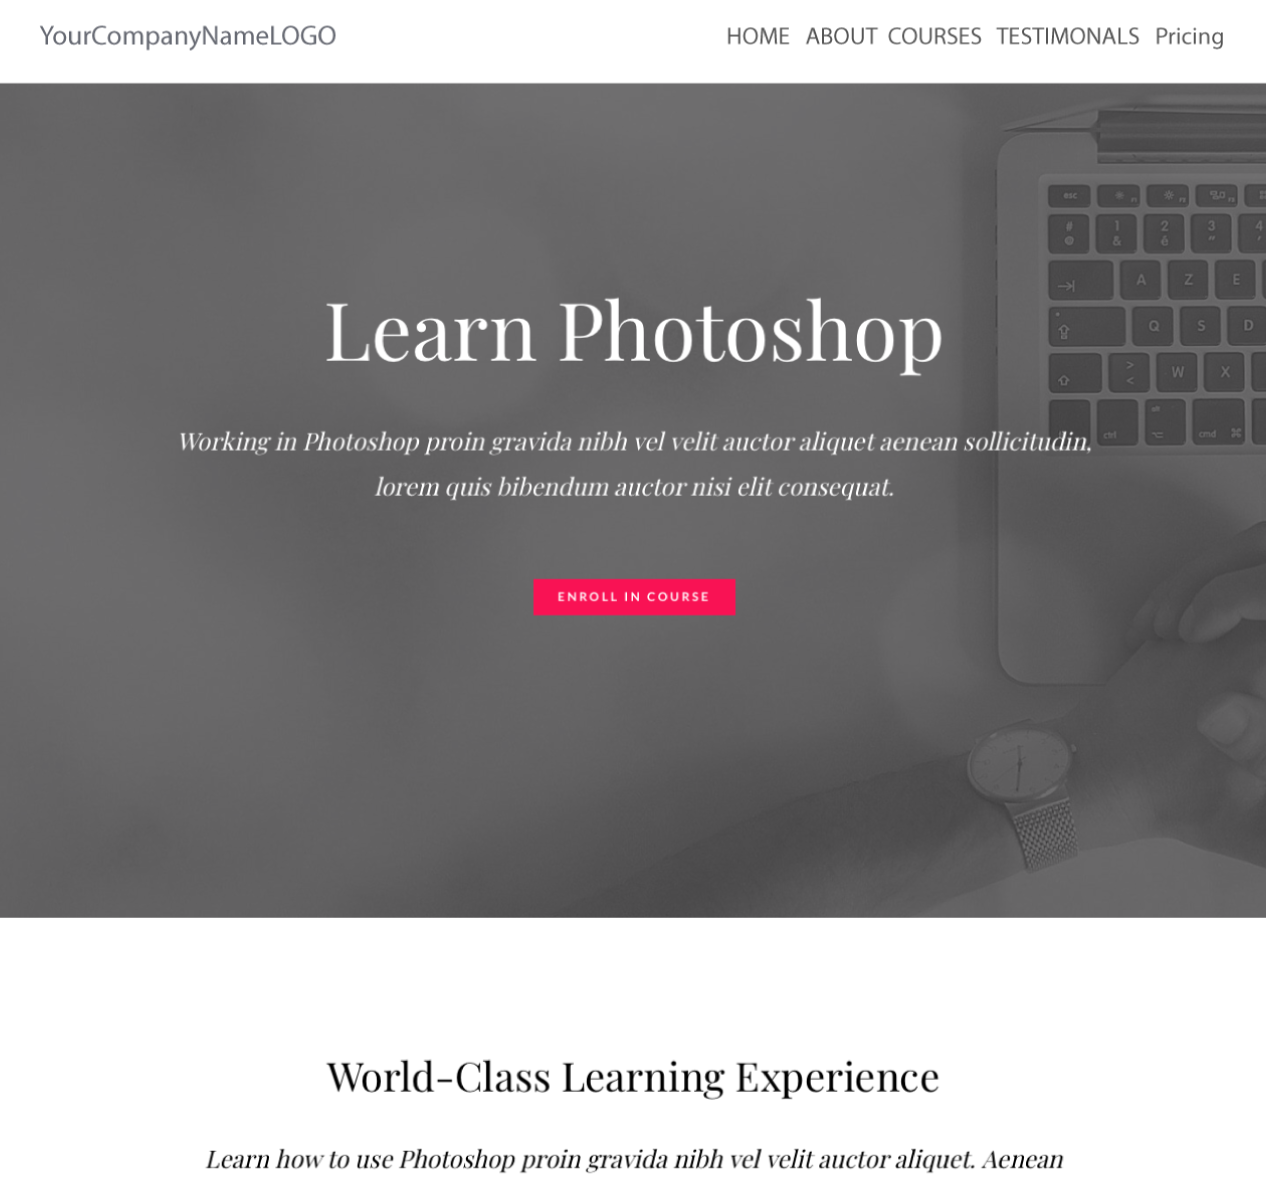 Center Image of Learning Photoshop